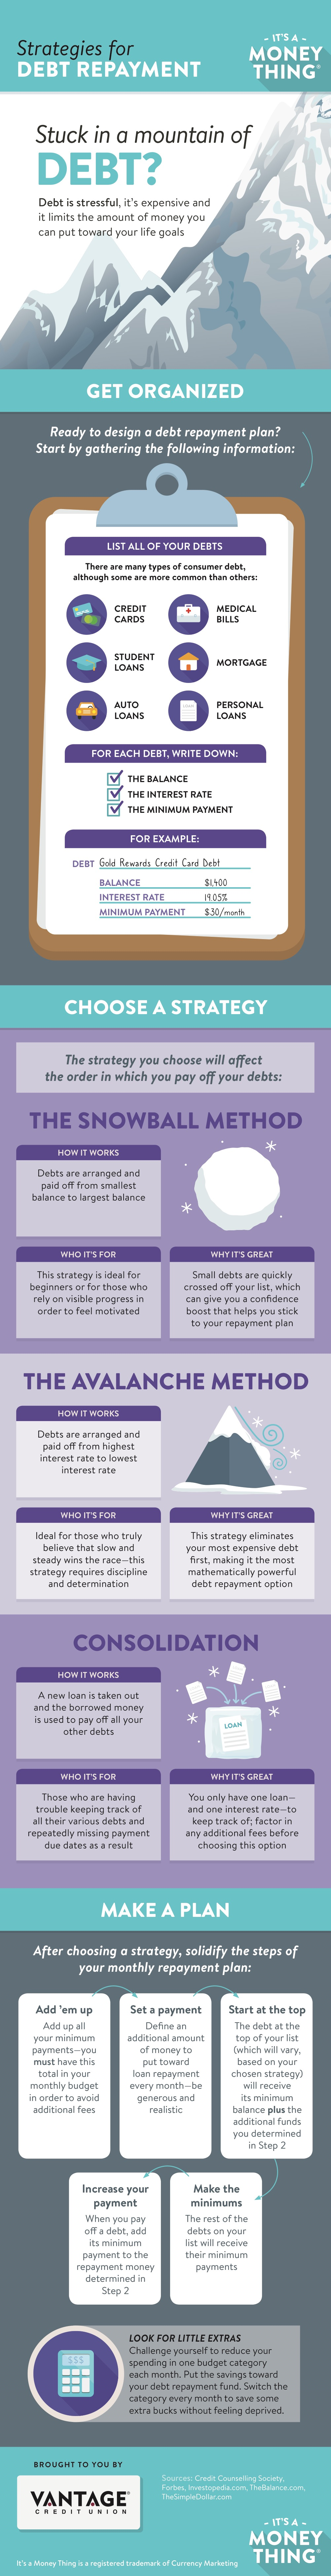 Strategies for Debt Repayment Infographic